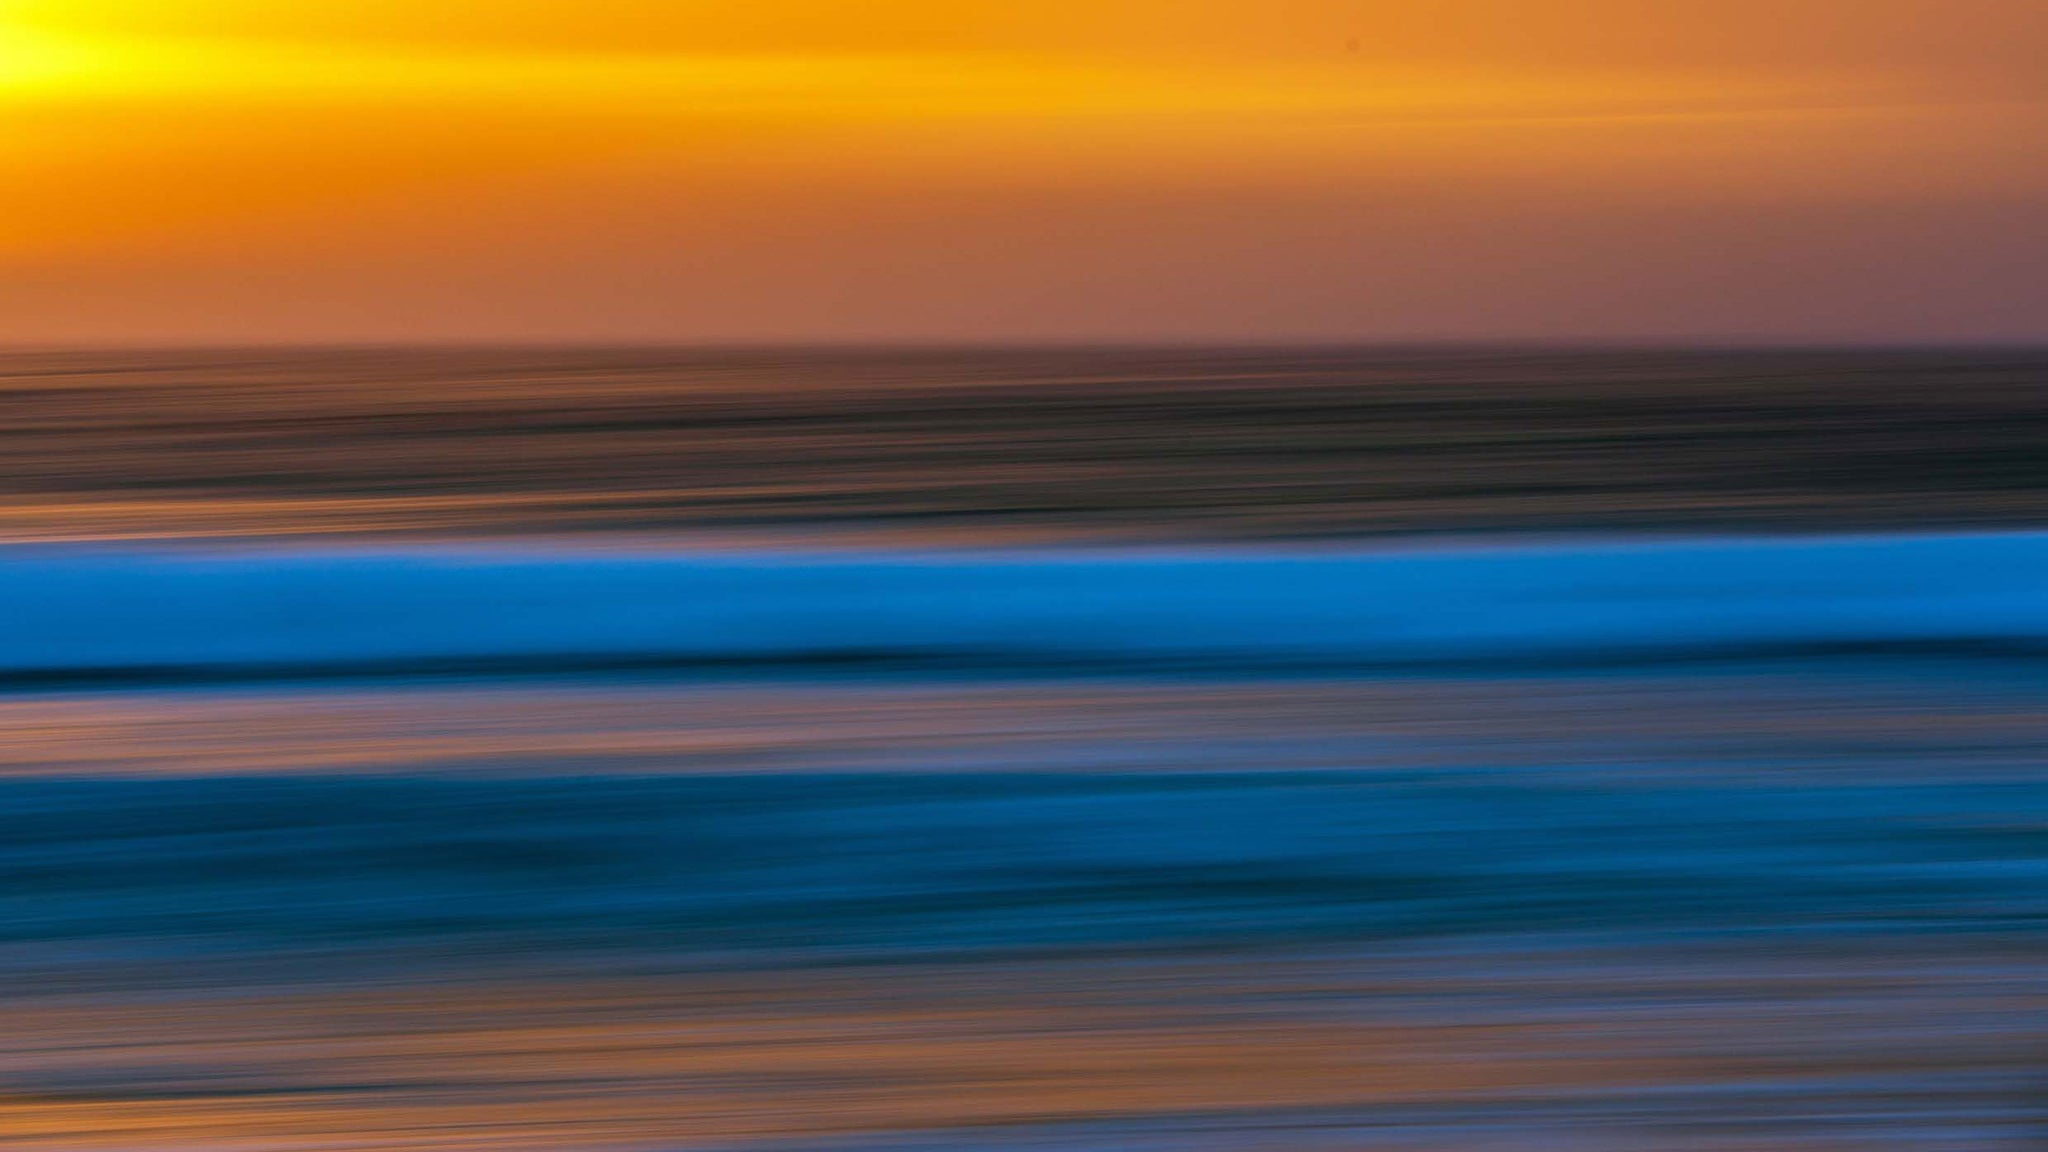 Slow Shutter Panning - How To Guide By Vagabond Creative Guide Mitch Pearson-Goff